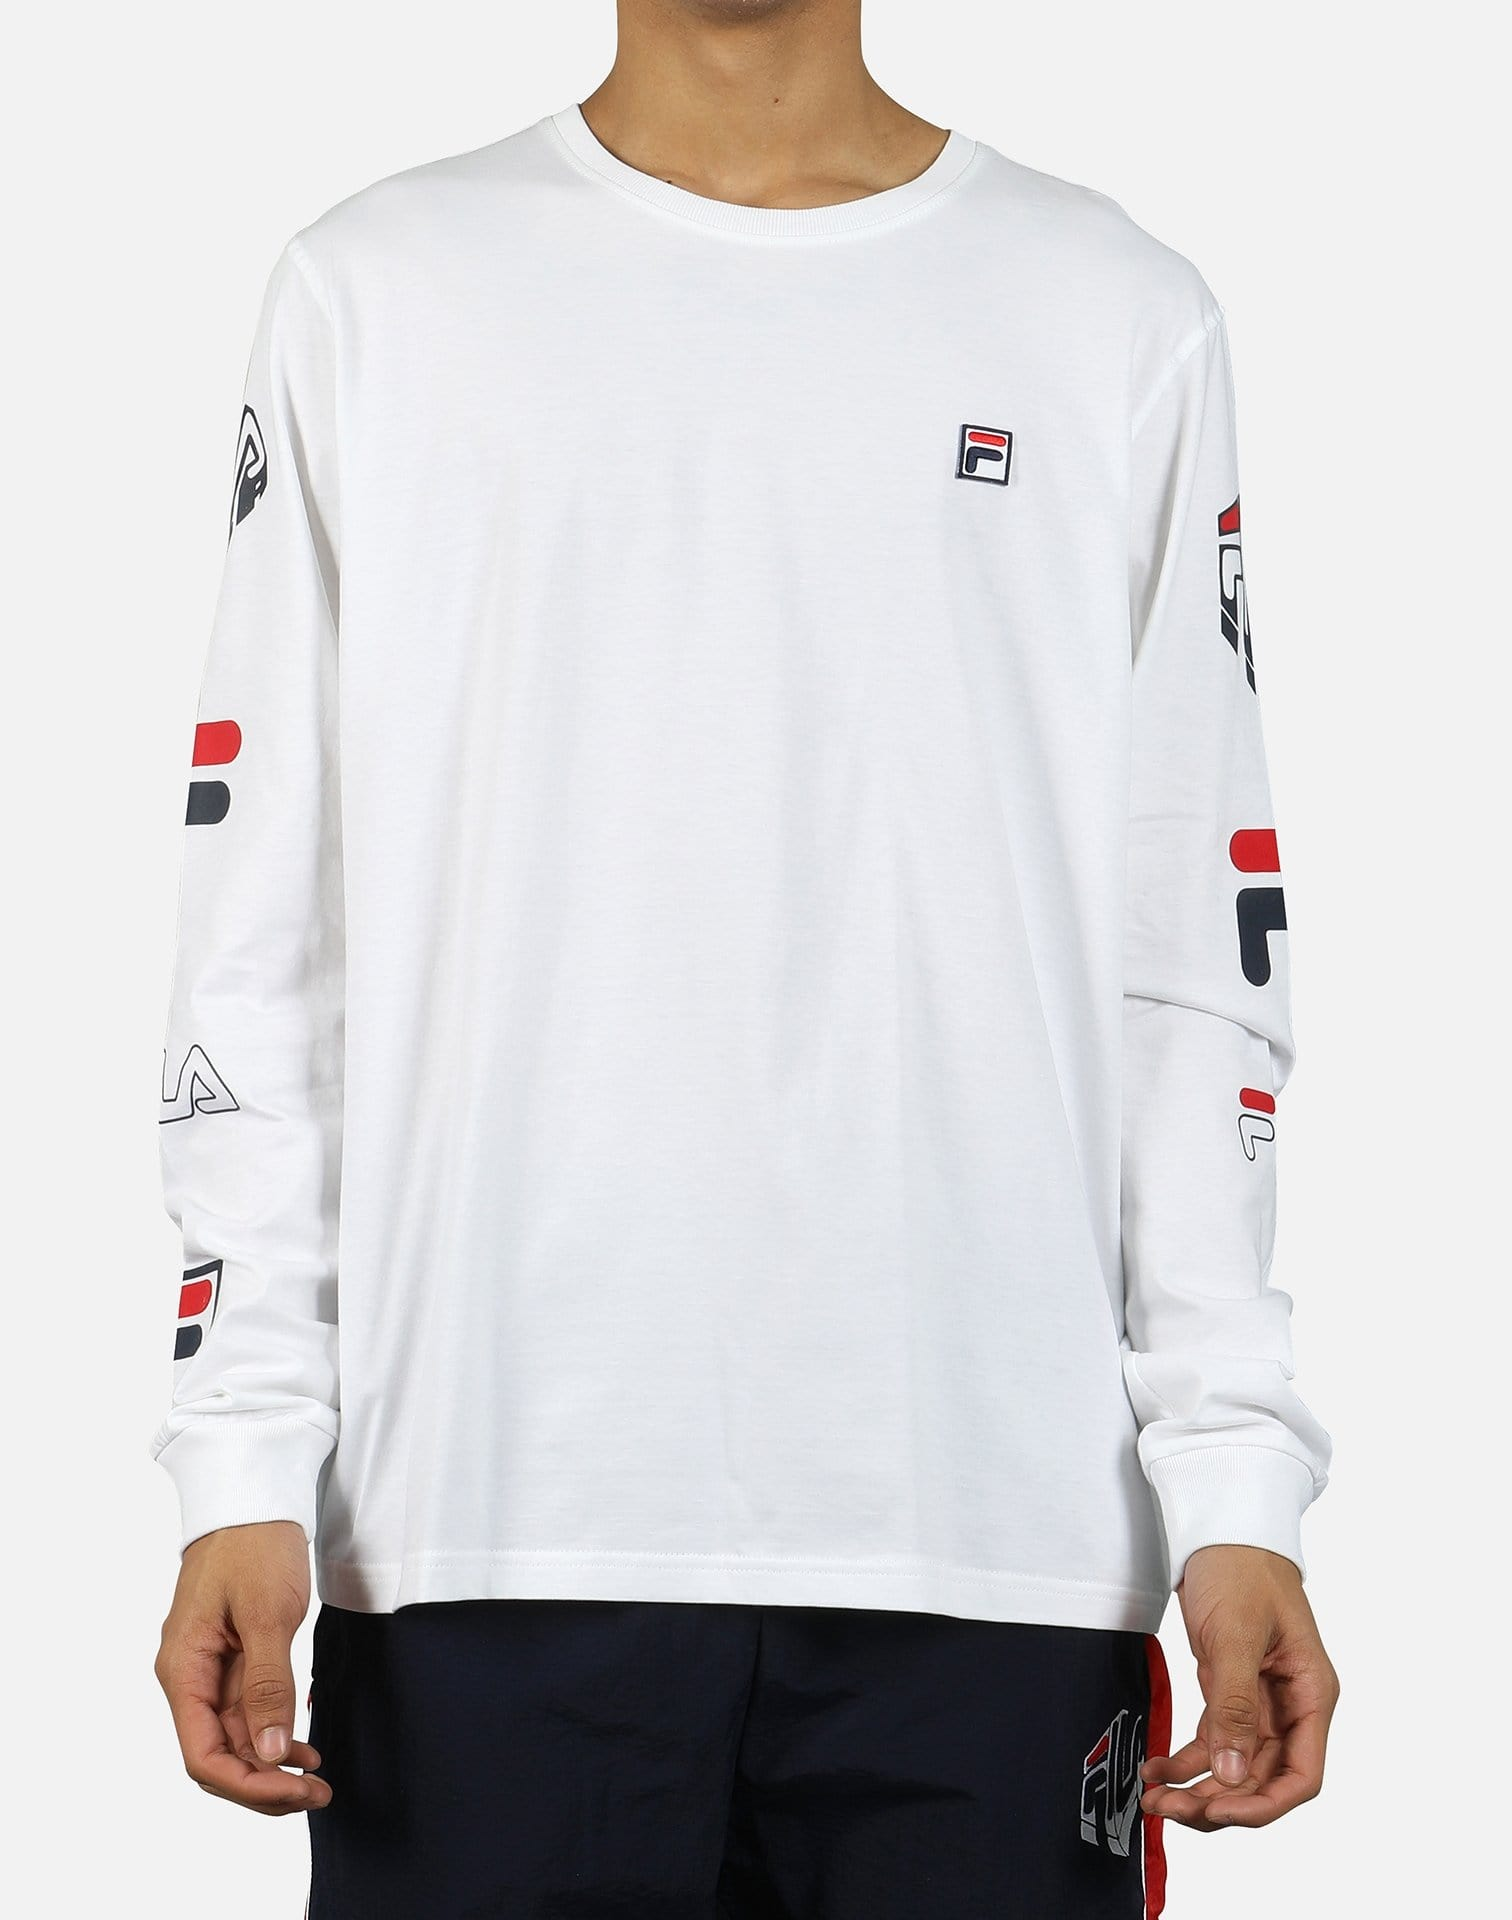 FILA Men's Alves Long-Sleeve Shirt